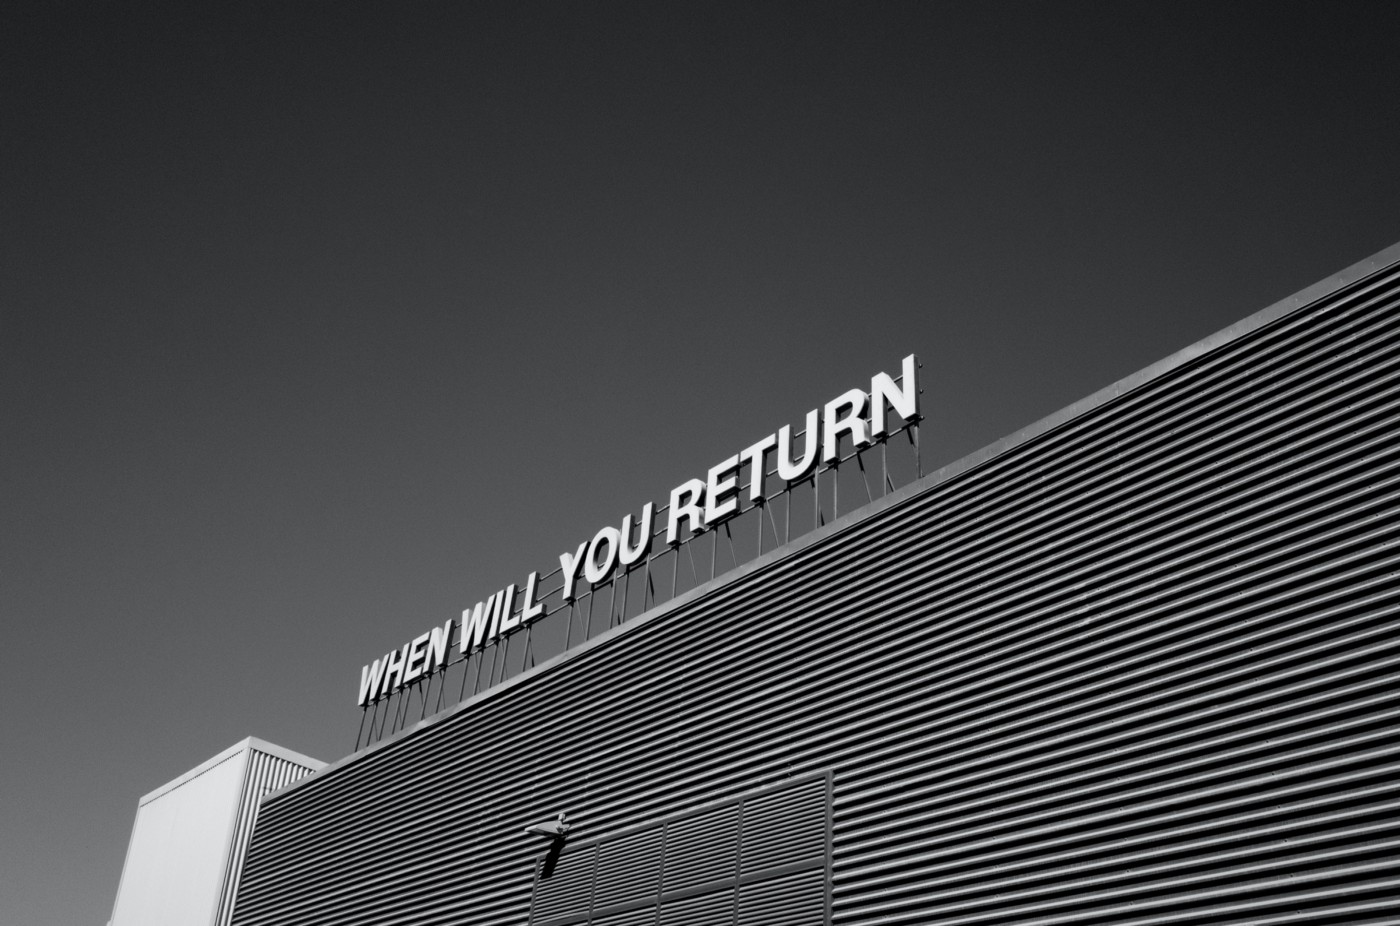 """""""When will you return?"""" it's a poignant questions. It's potentially also a hard one to answer."""